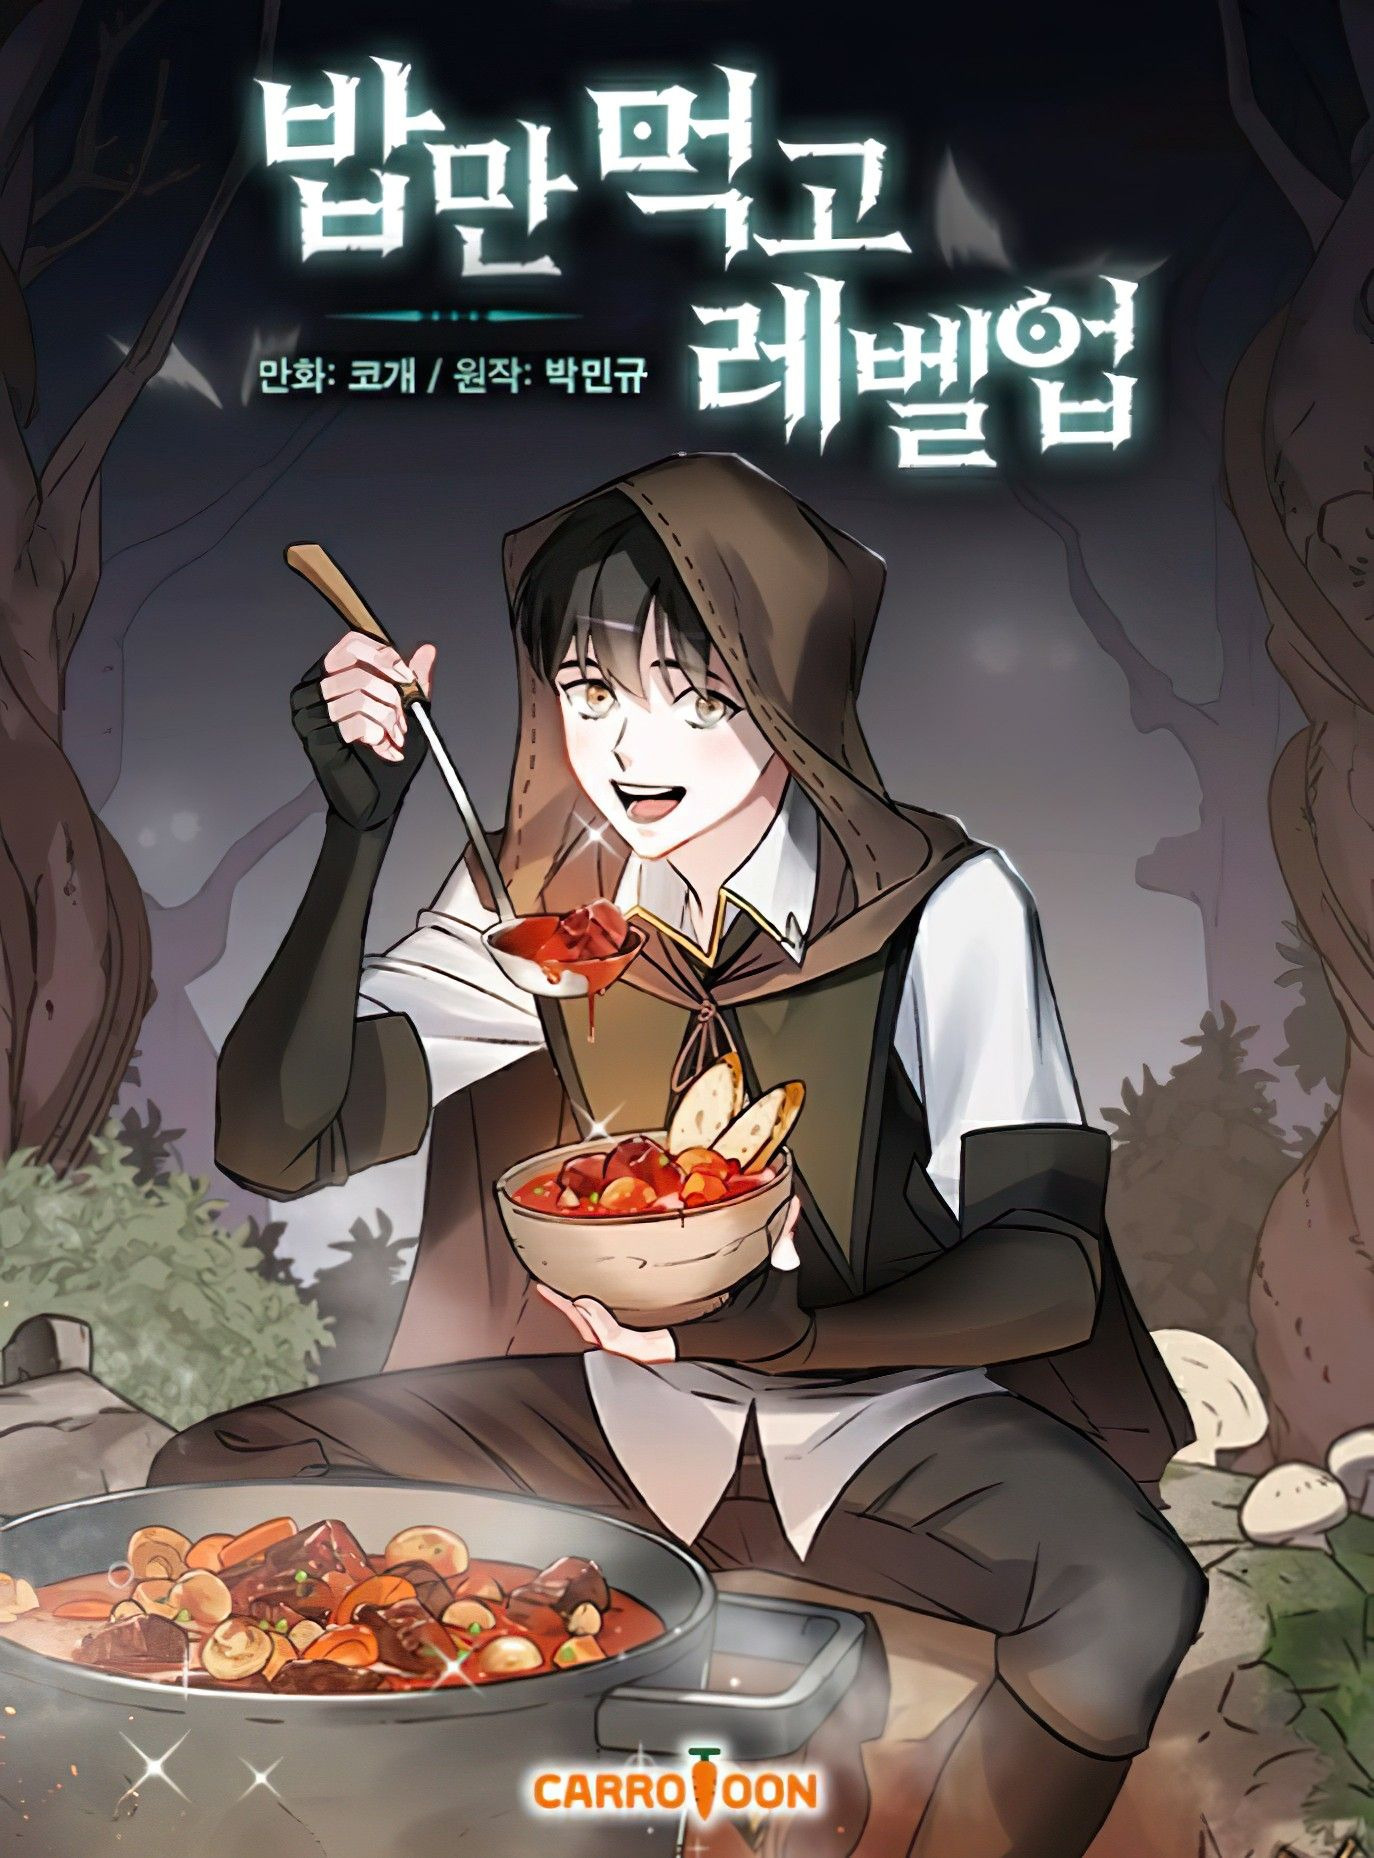 Pin on Webtoon Covers